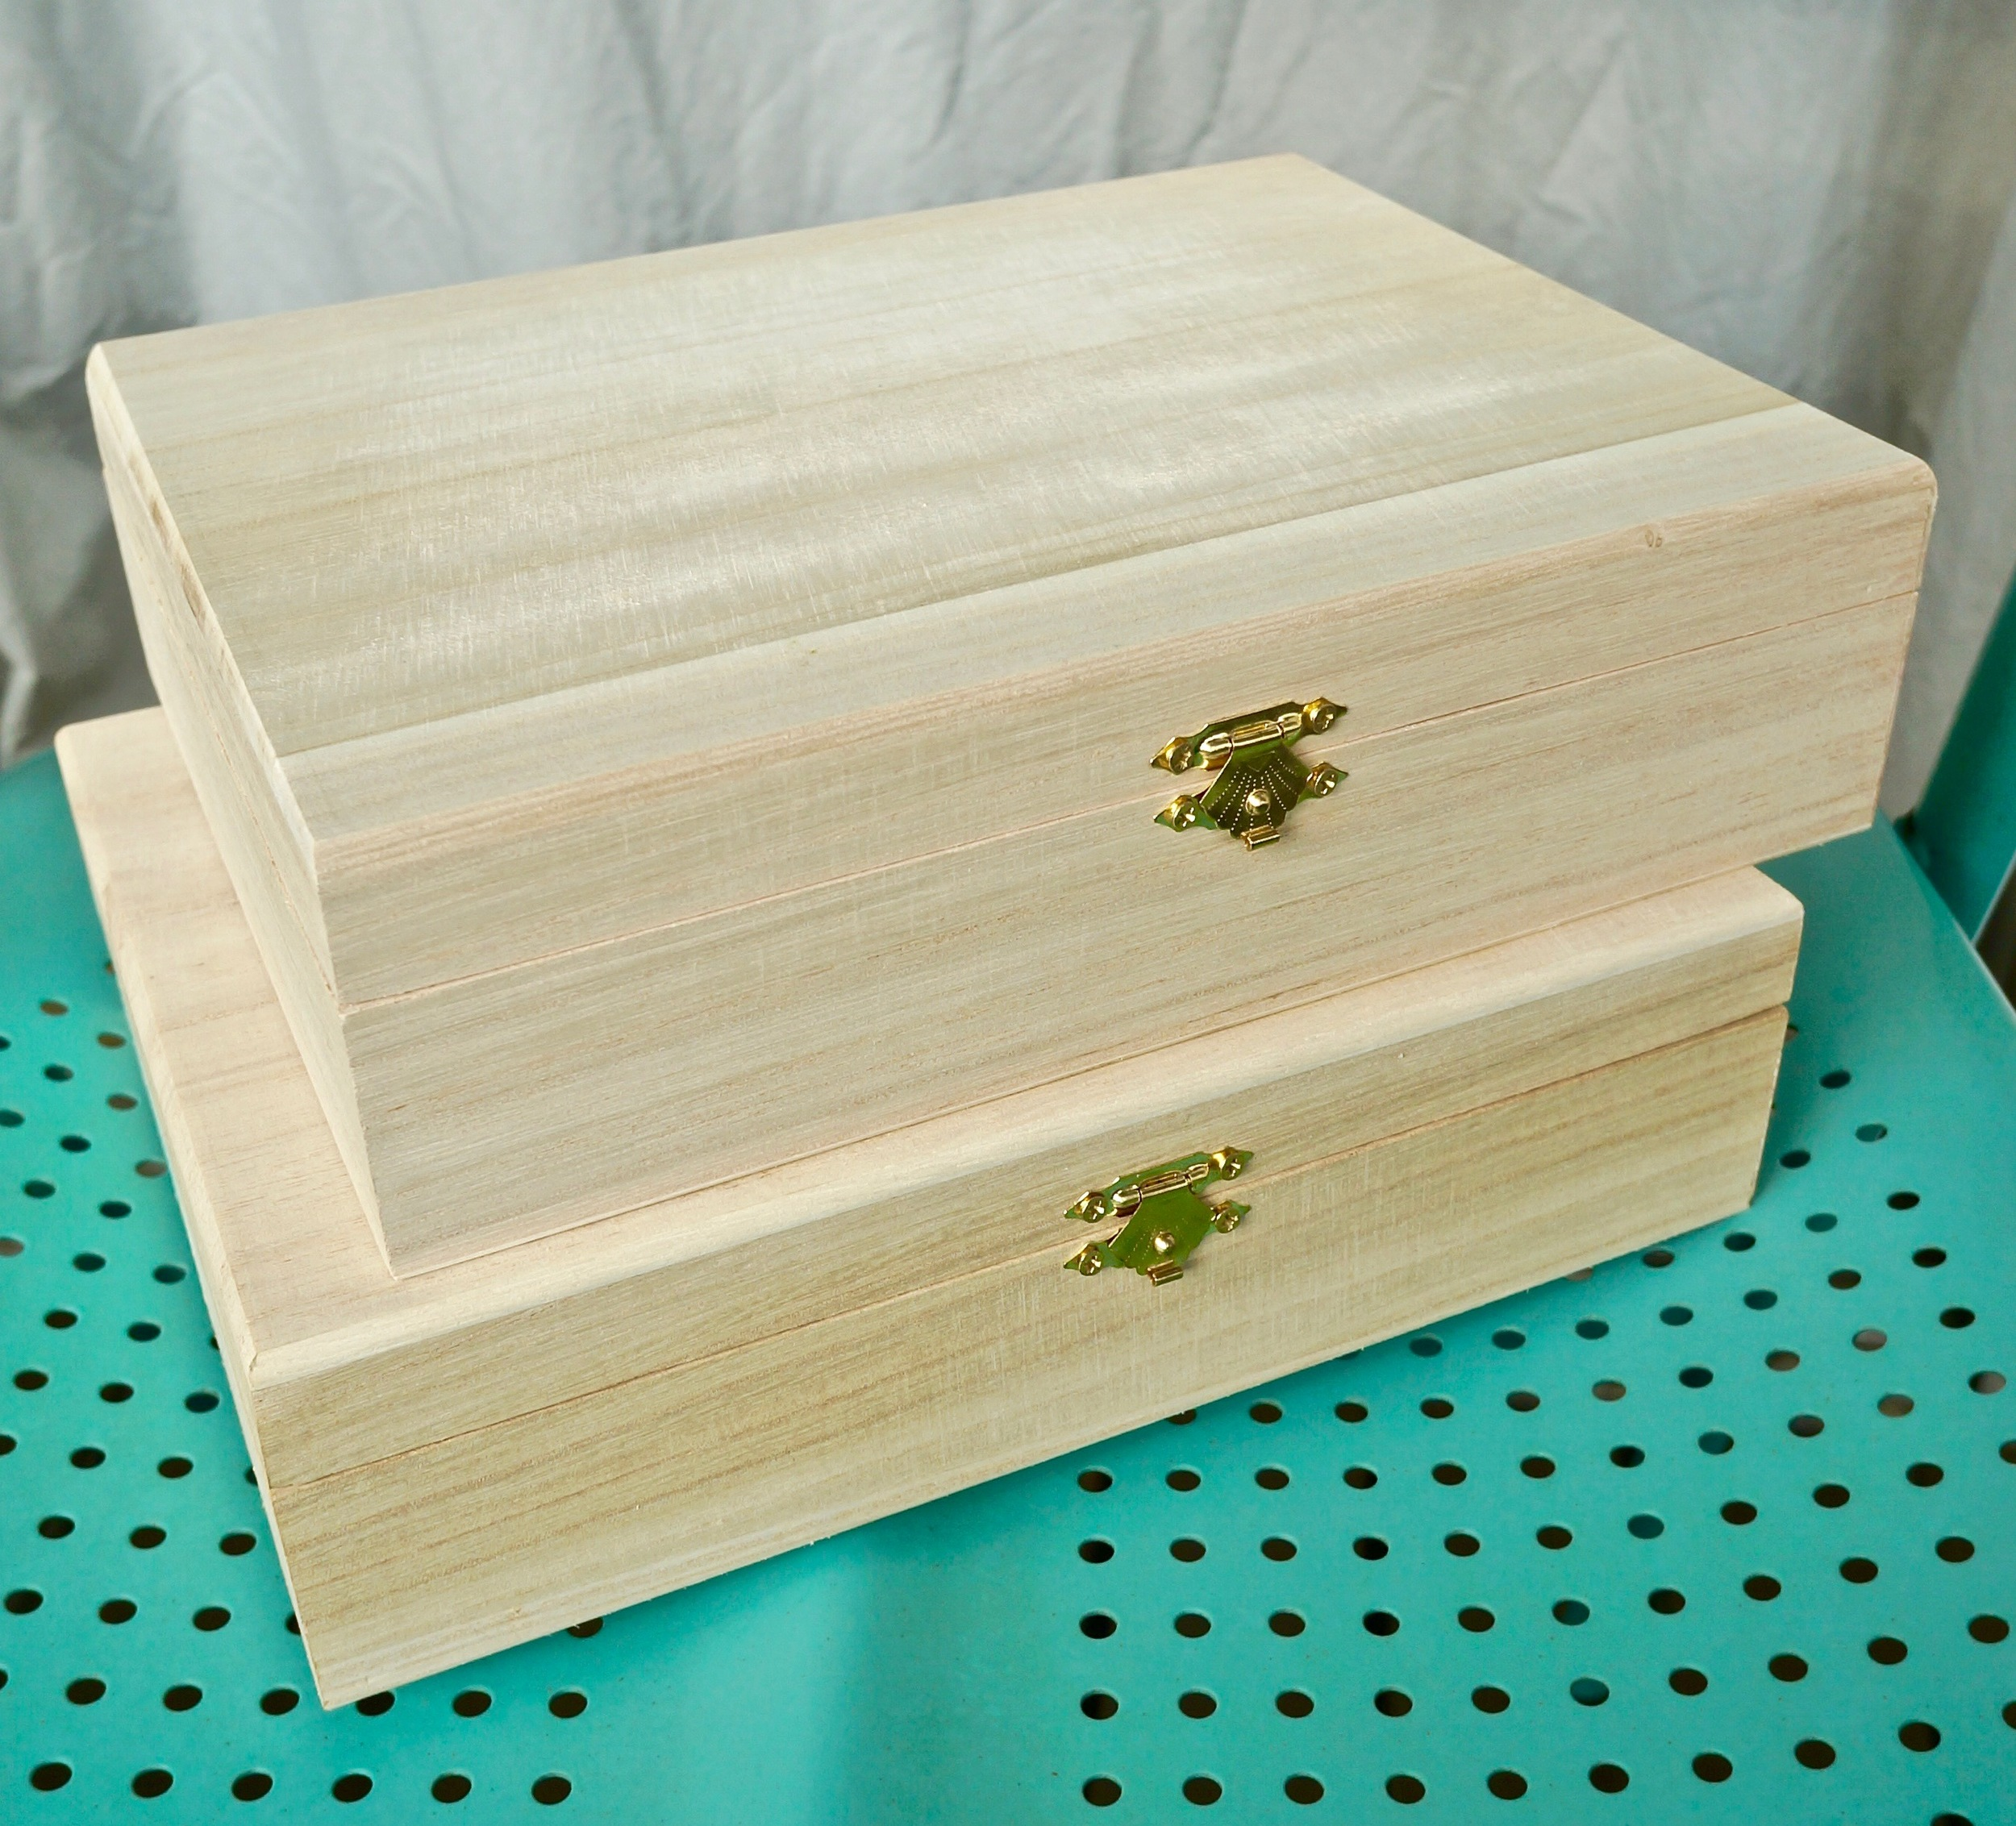 joann-wooden-boxes.jpg